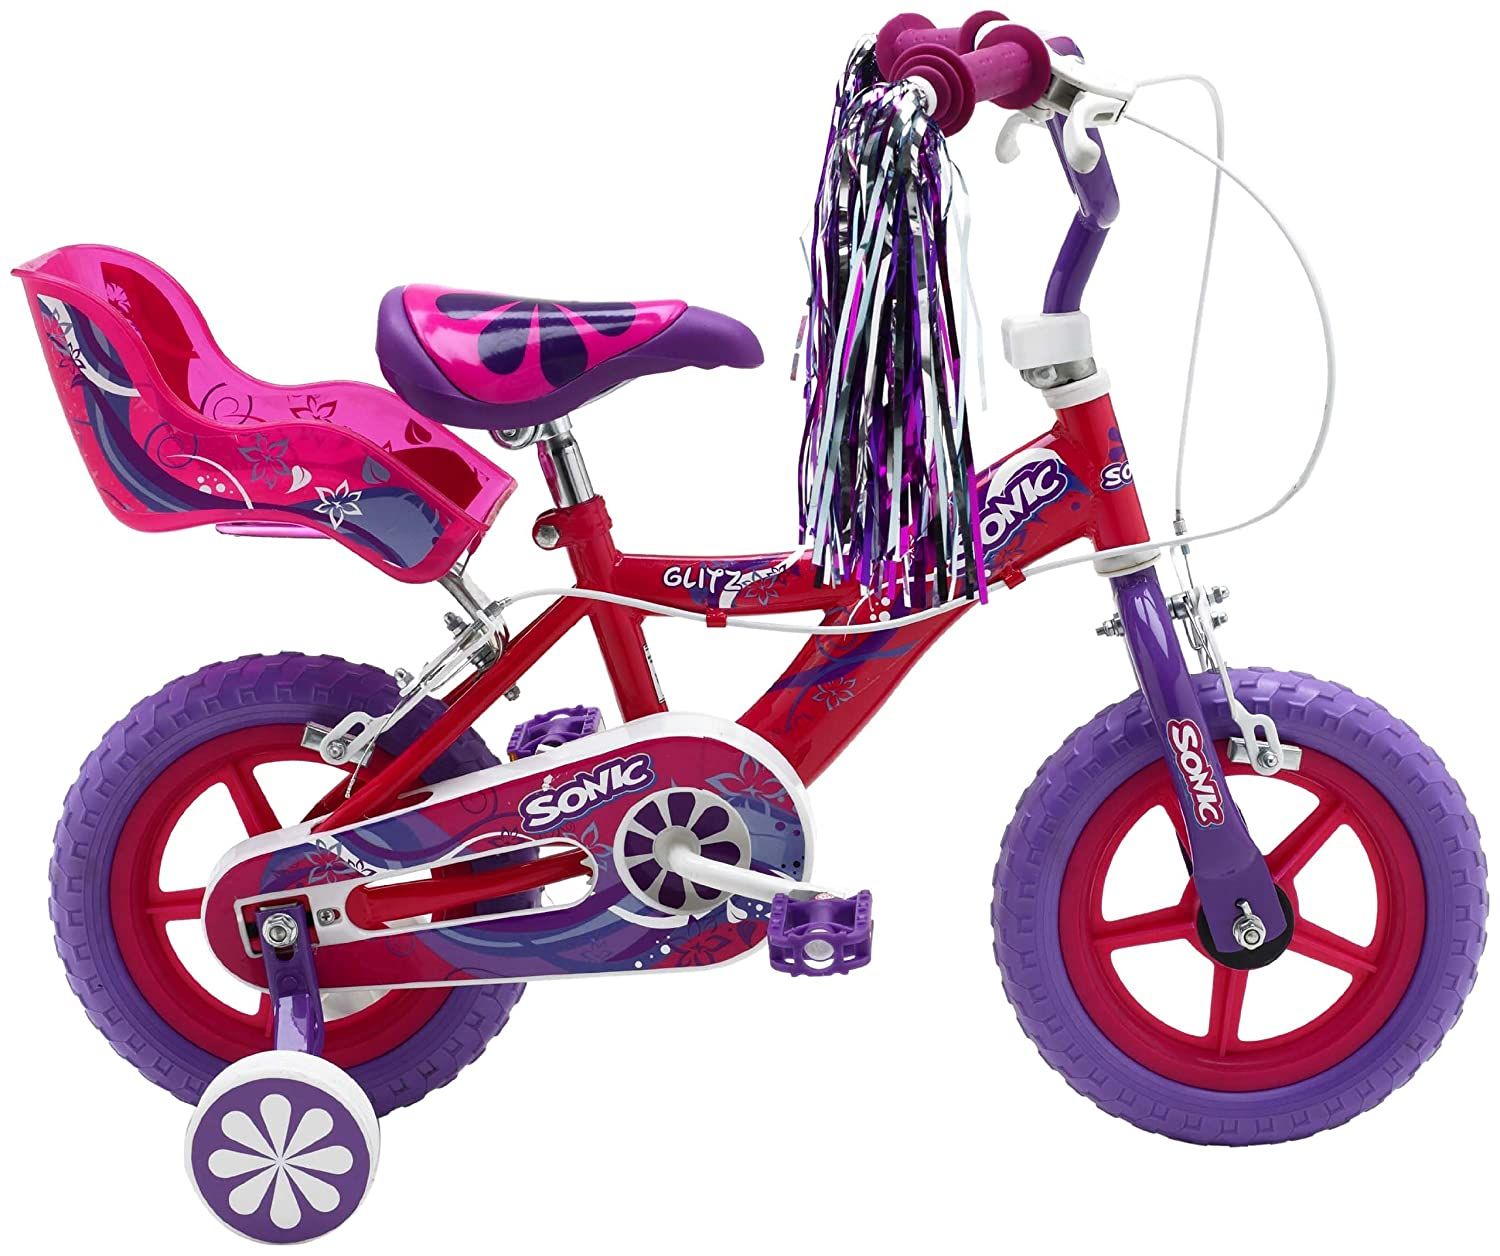 Bikes For Toddlers Girls Sonic Glitz Girls Bike